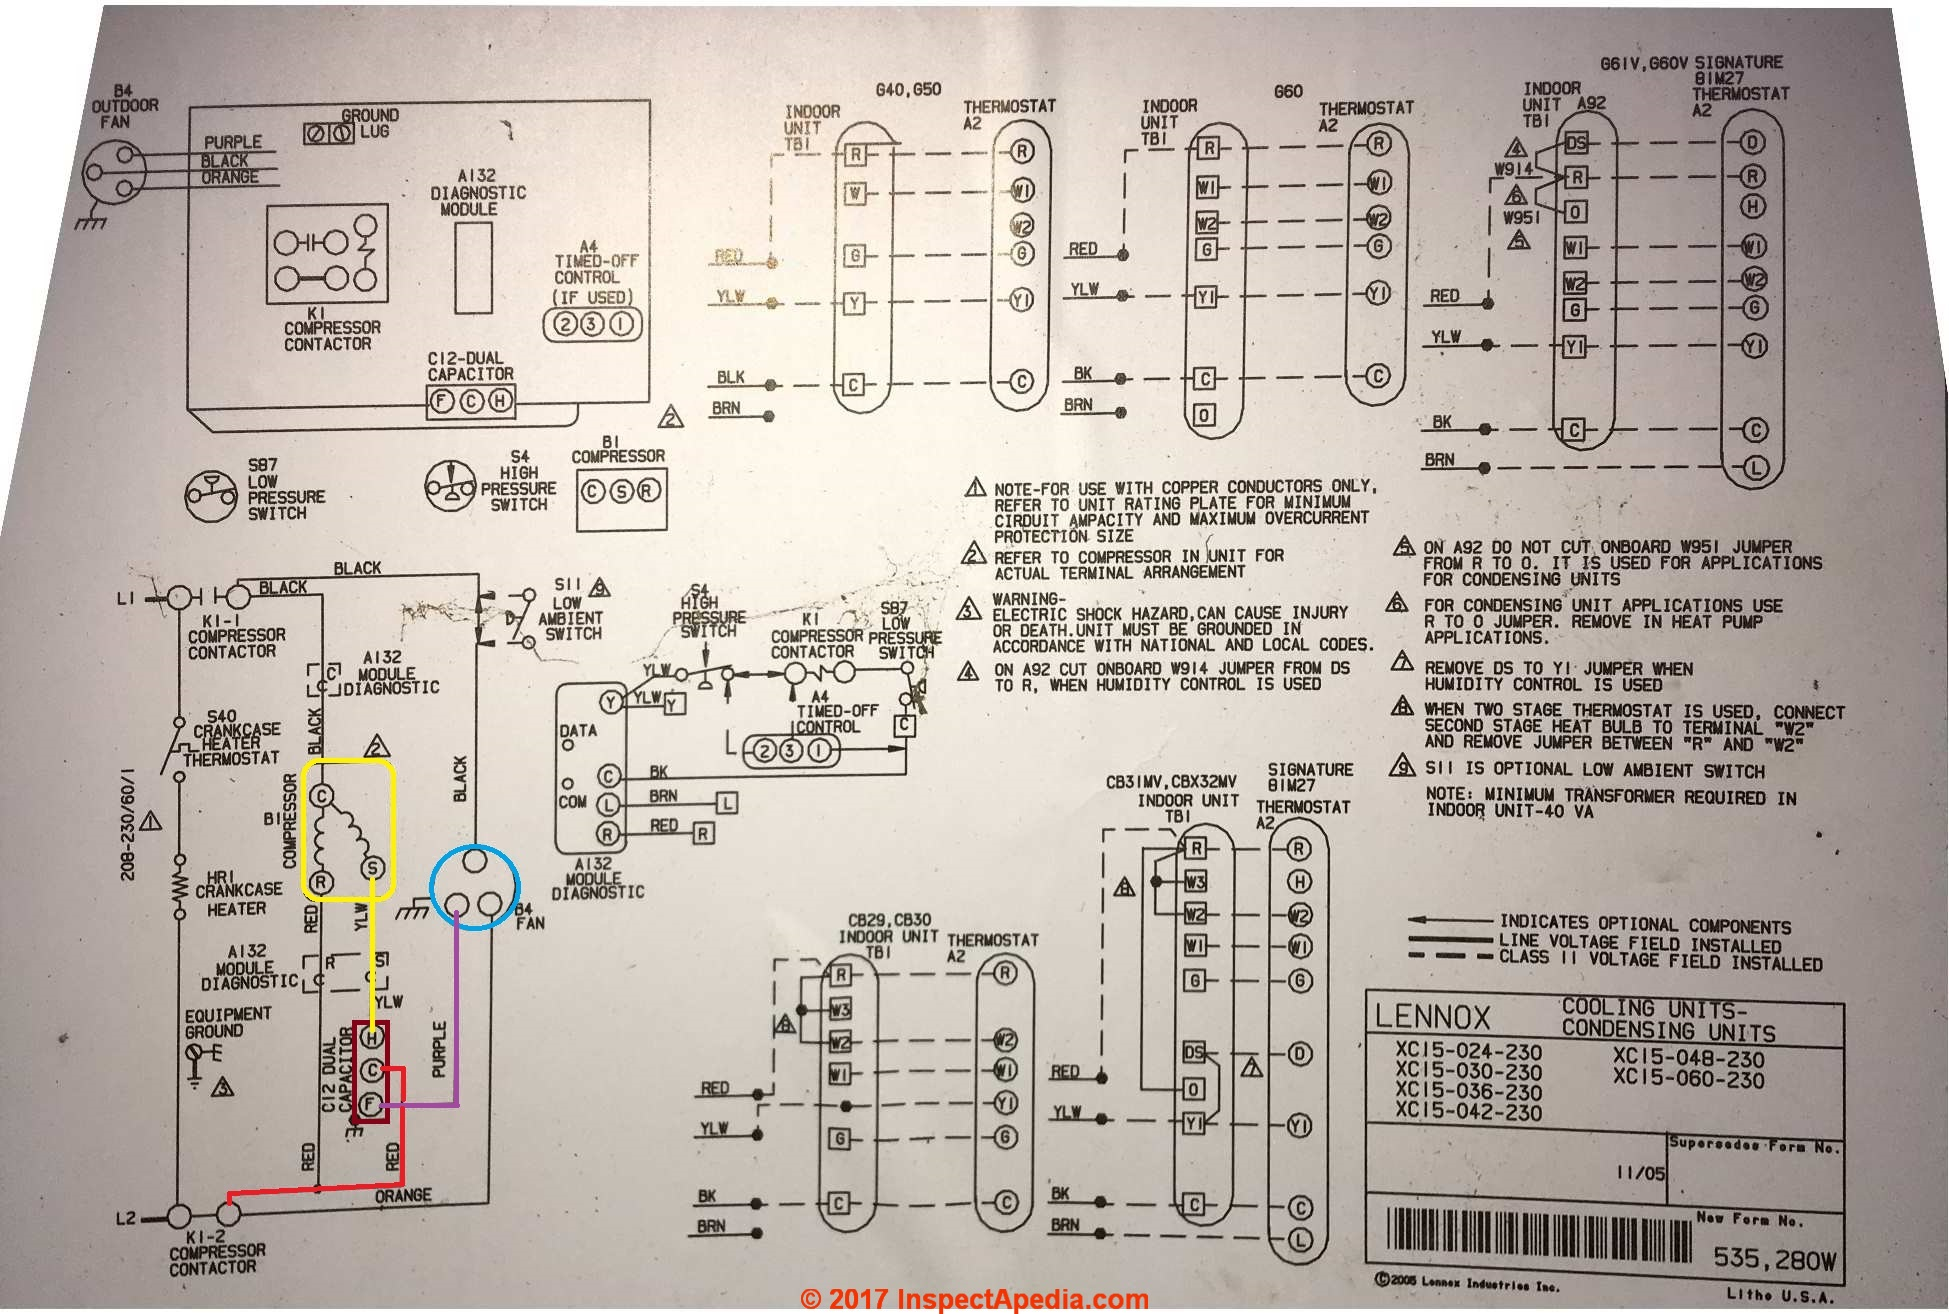 Electric Motor Starting Run Capacitor Types Installation Guide To Air Compressor Magnetic Starter Wiring Diagram Get Free Image About Lennox Xc15 Condenser Unit C Showing Connections